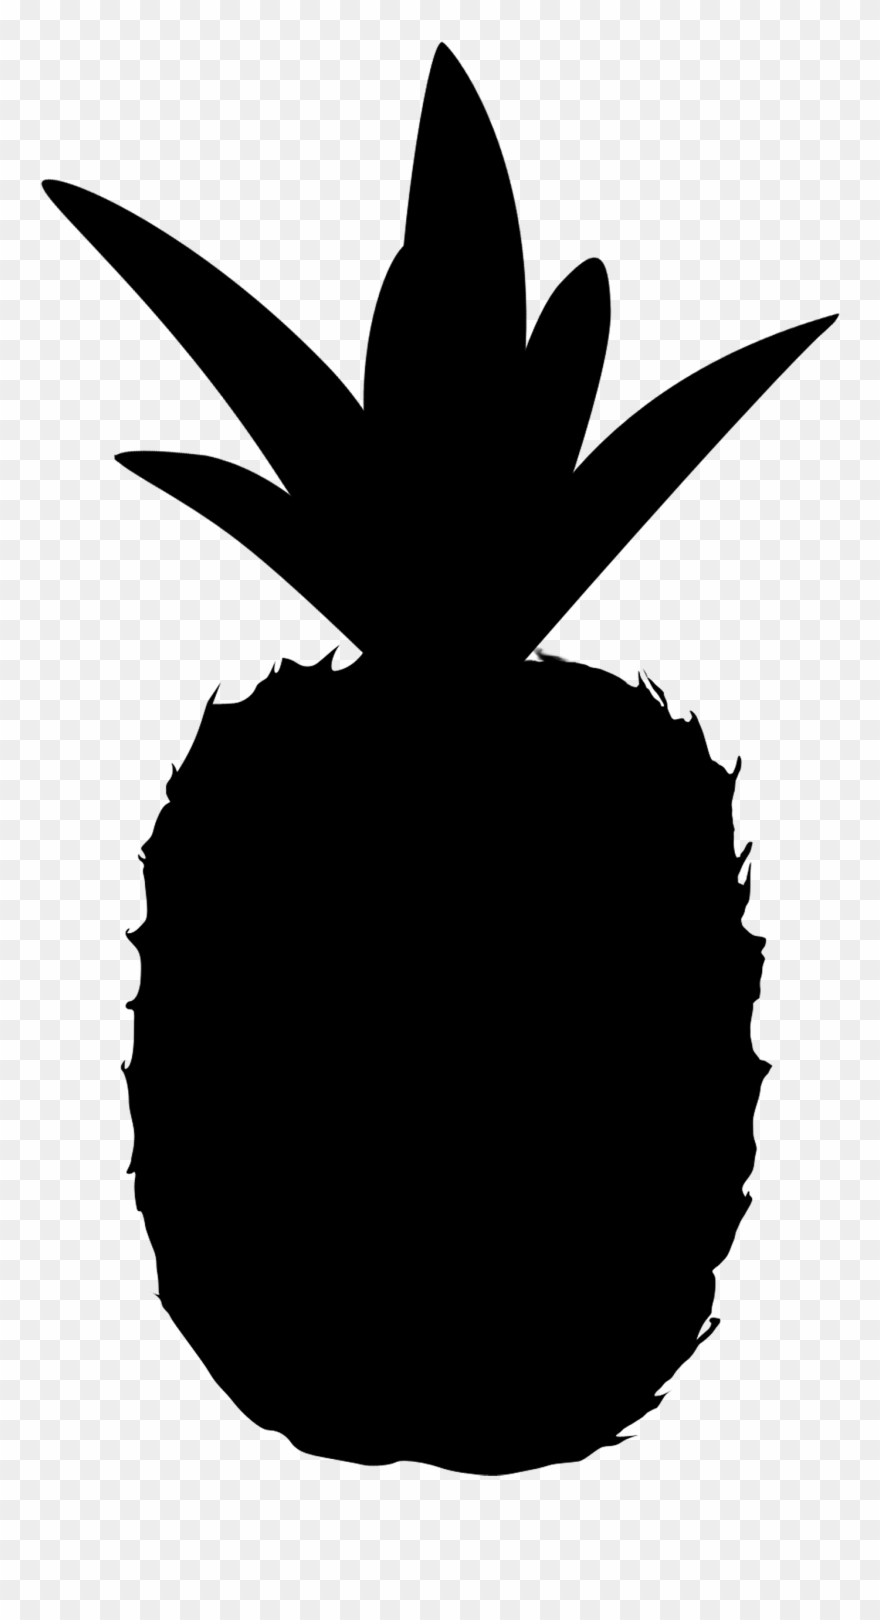 pineapple clipart black and white silhouette